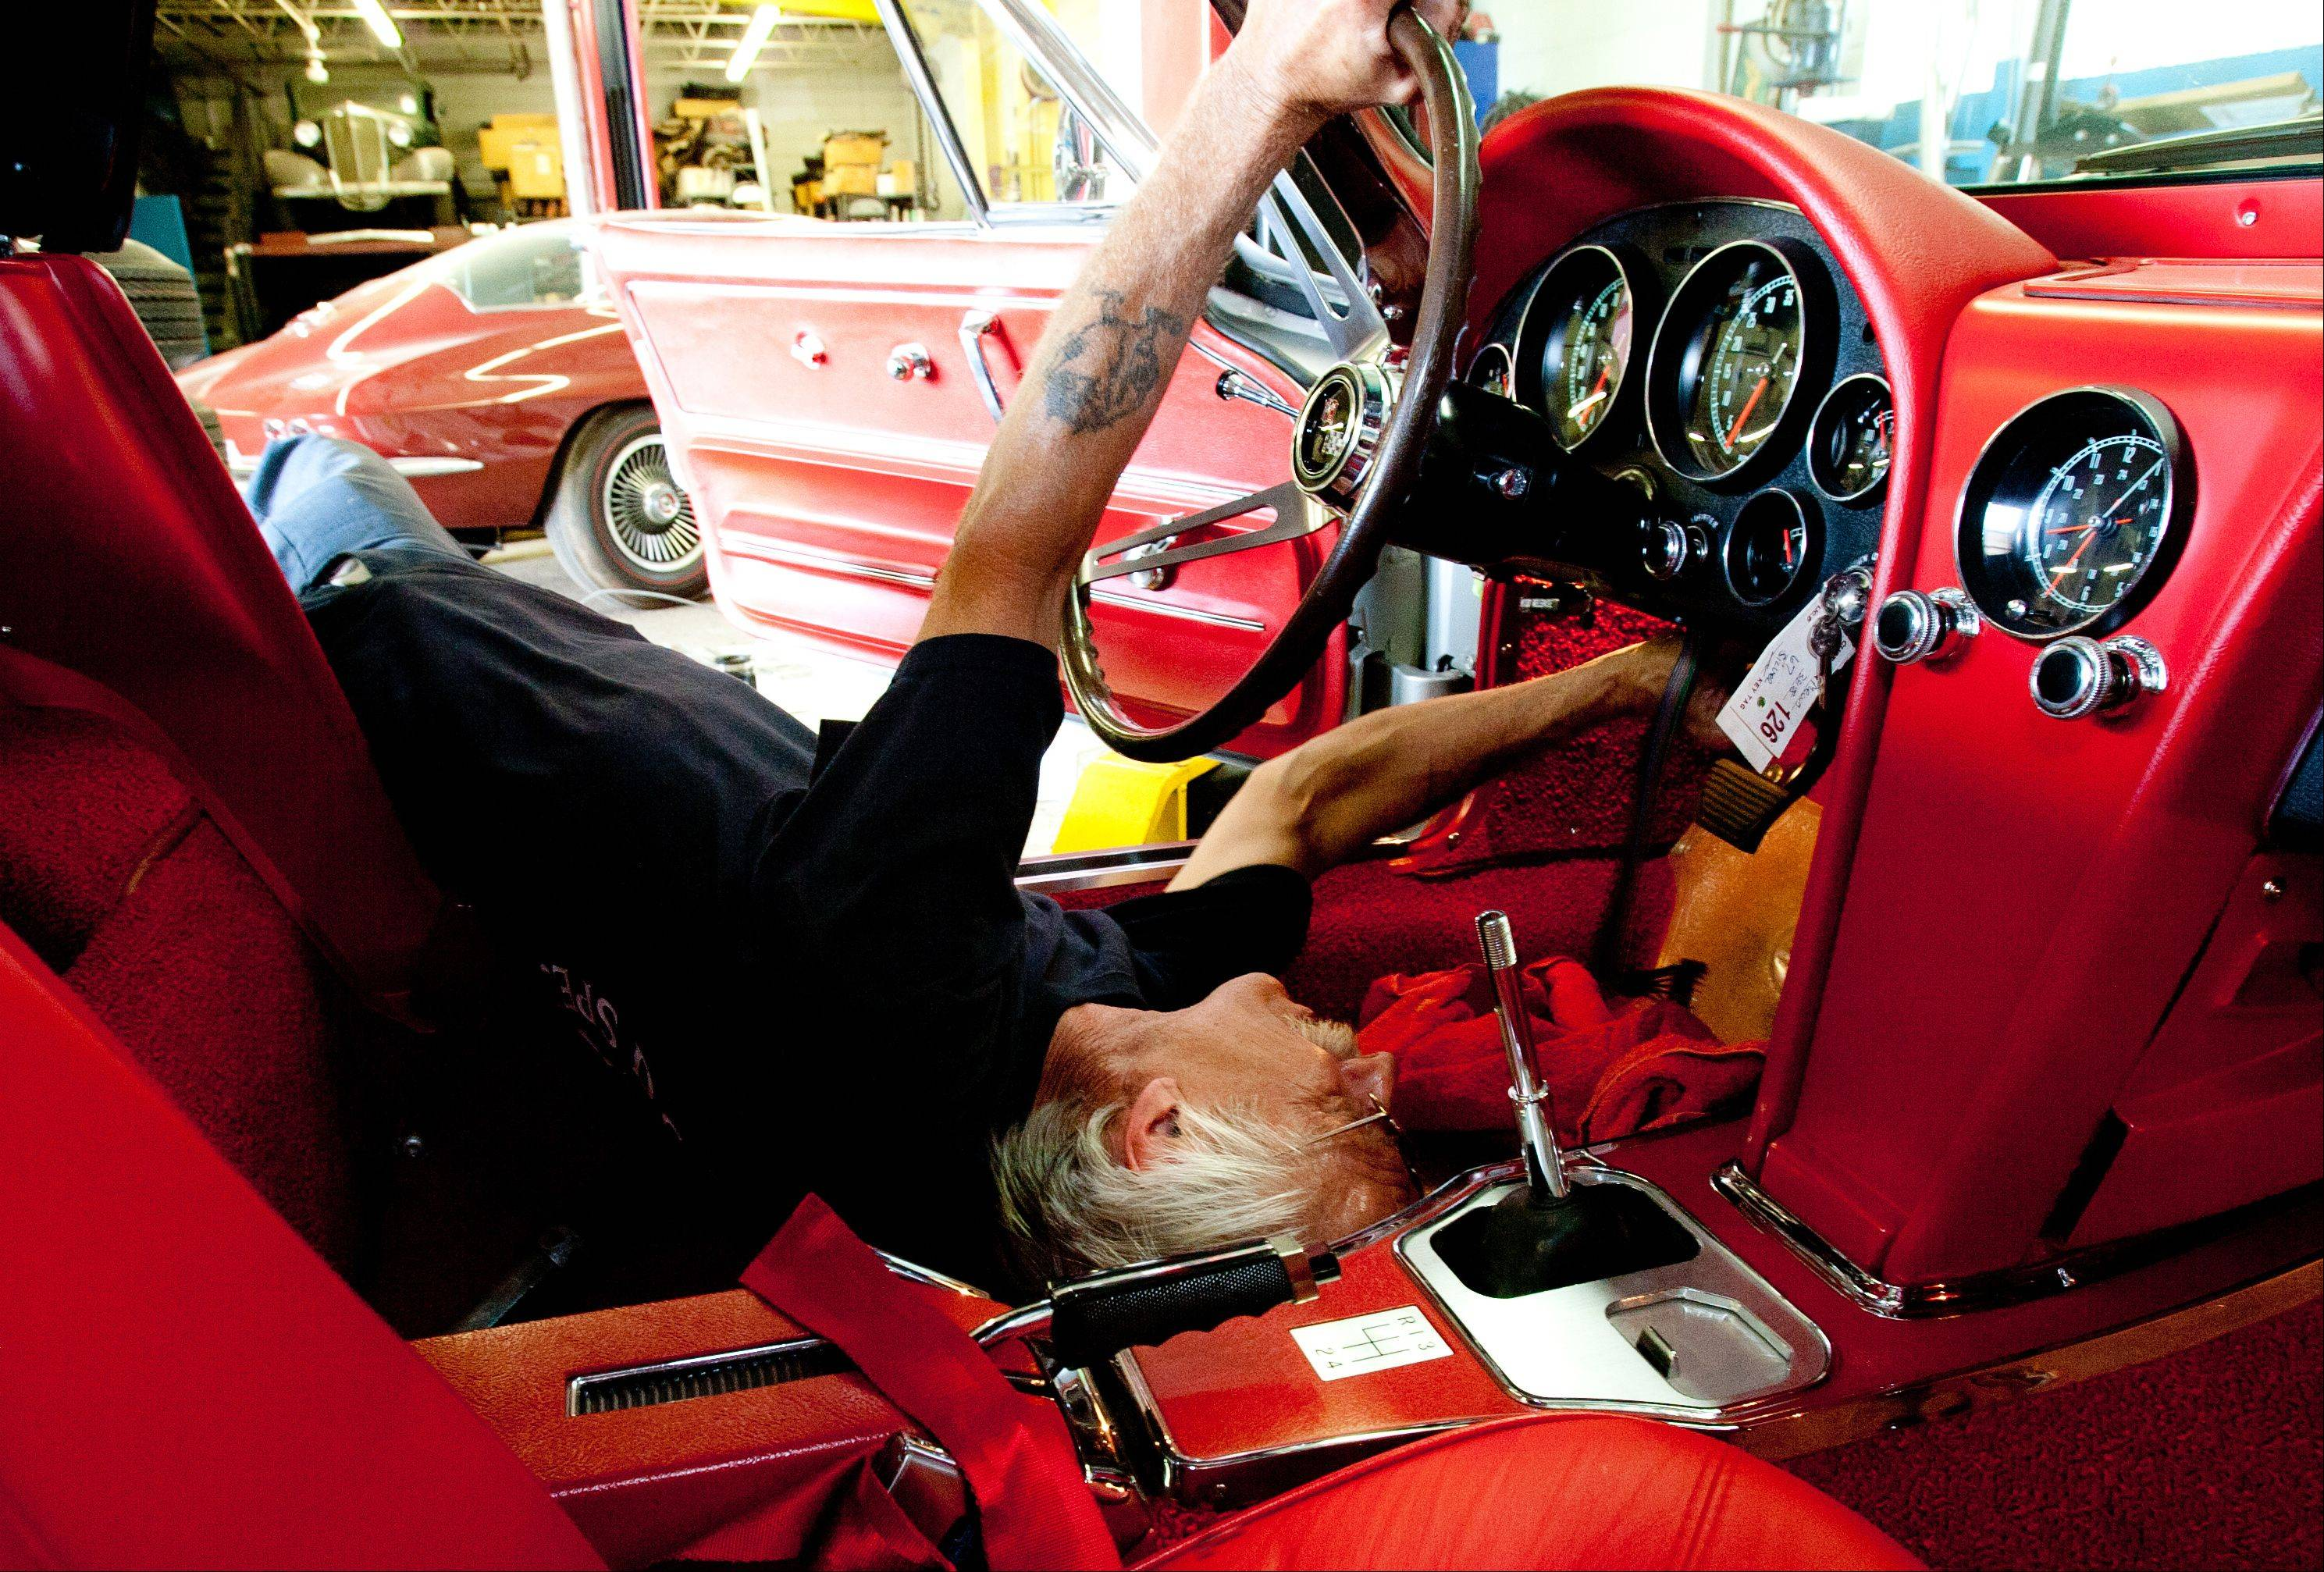 Corvette restoration specialist Cary Kuczkowski of D&M Corvette Specialists in Downers Grove finishes reassembling a dash.